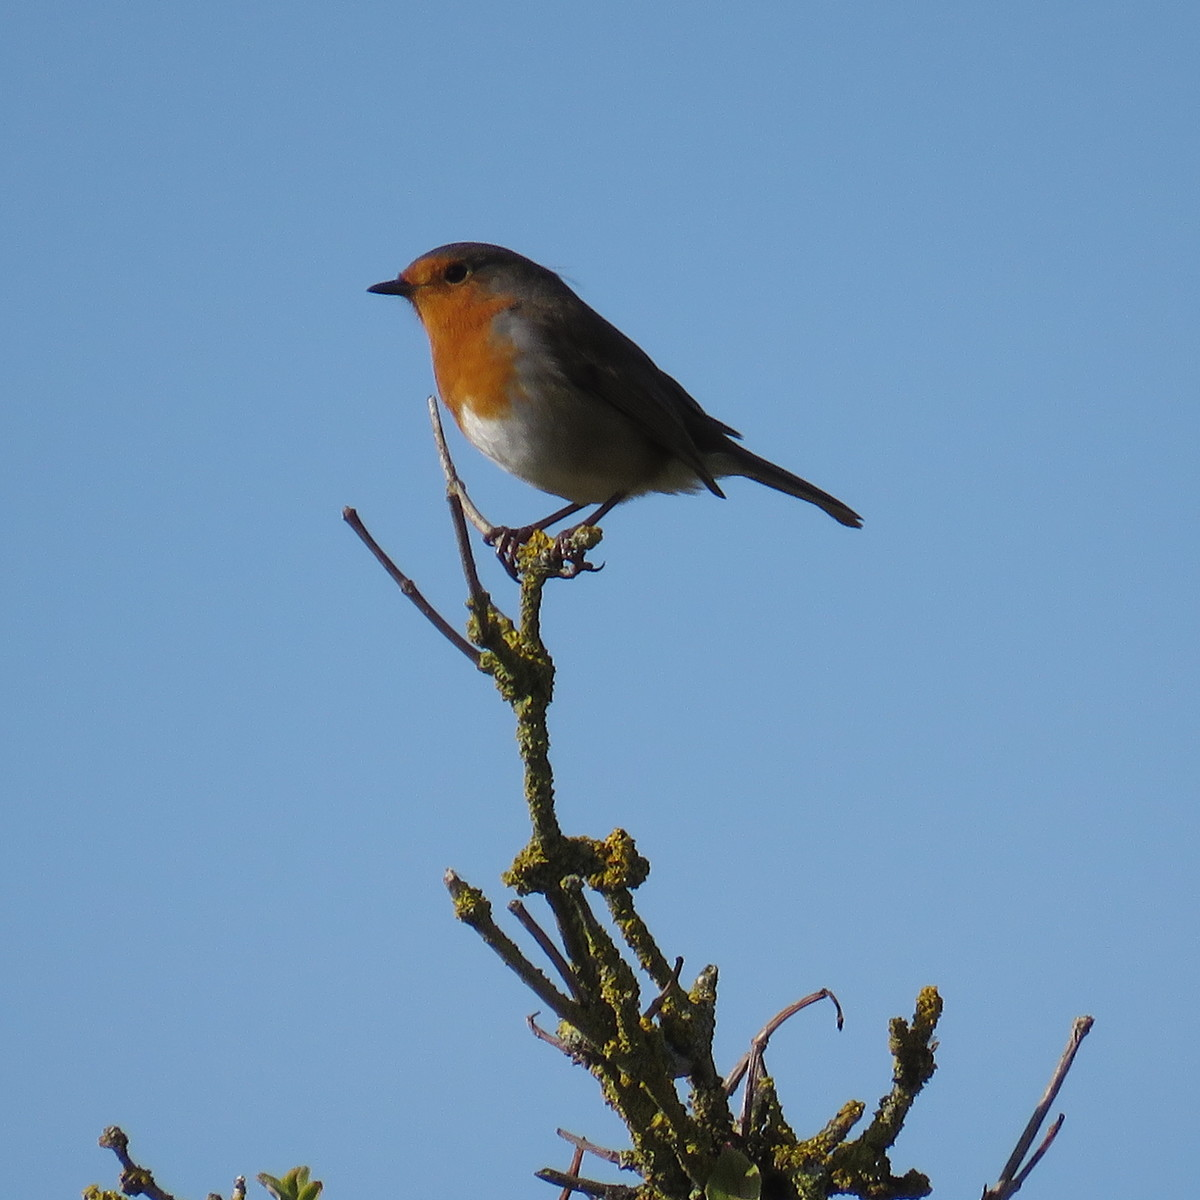 Robin, top of the tree